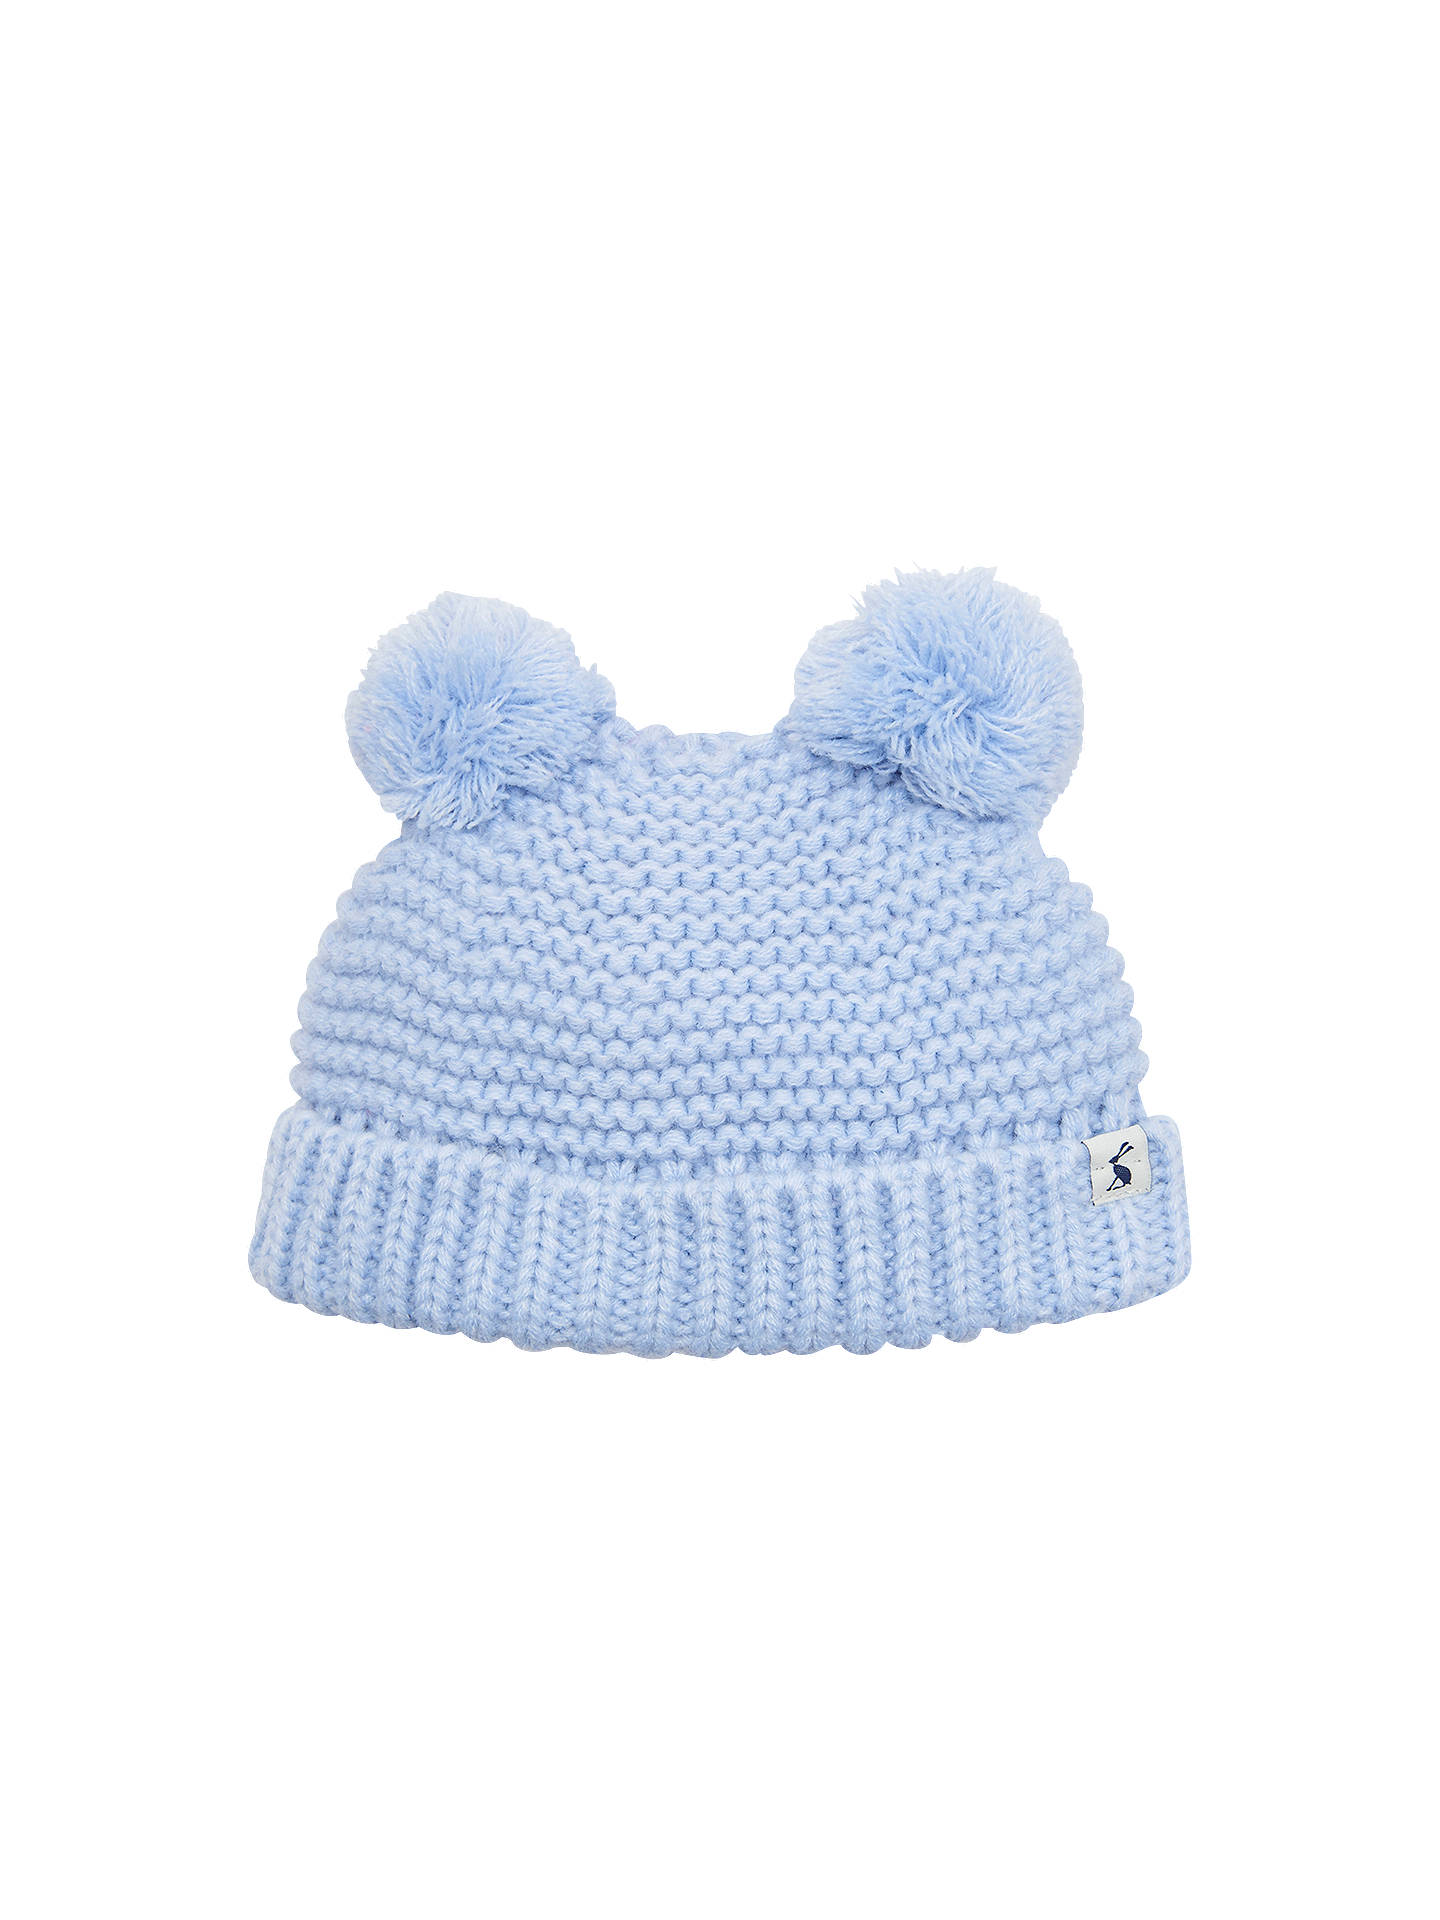 b2af907f11e BuyBaby Joule Knitted Pom Pom Hat